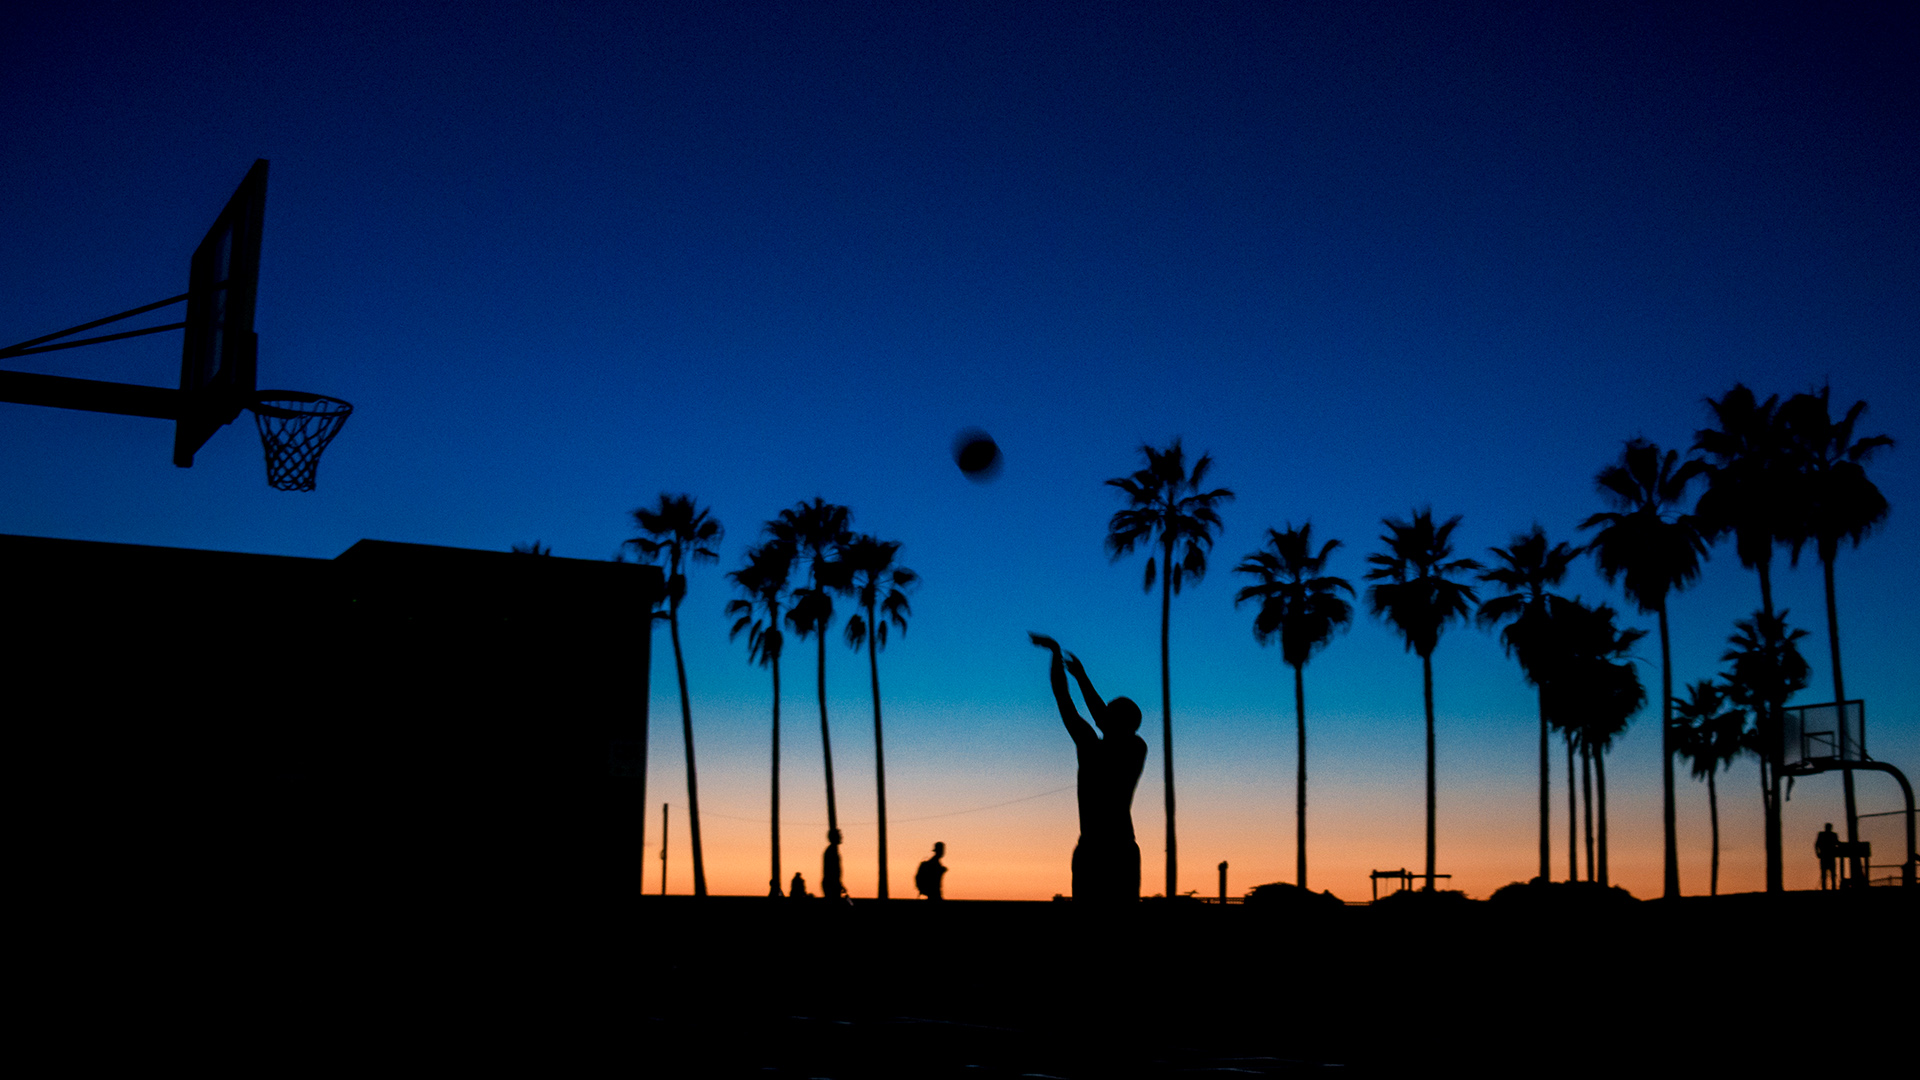 48 Venice Beach Basketball Wallpaper On Wallpapersafari